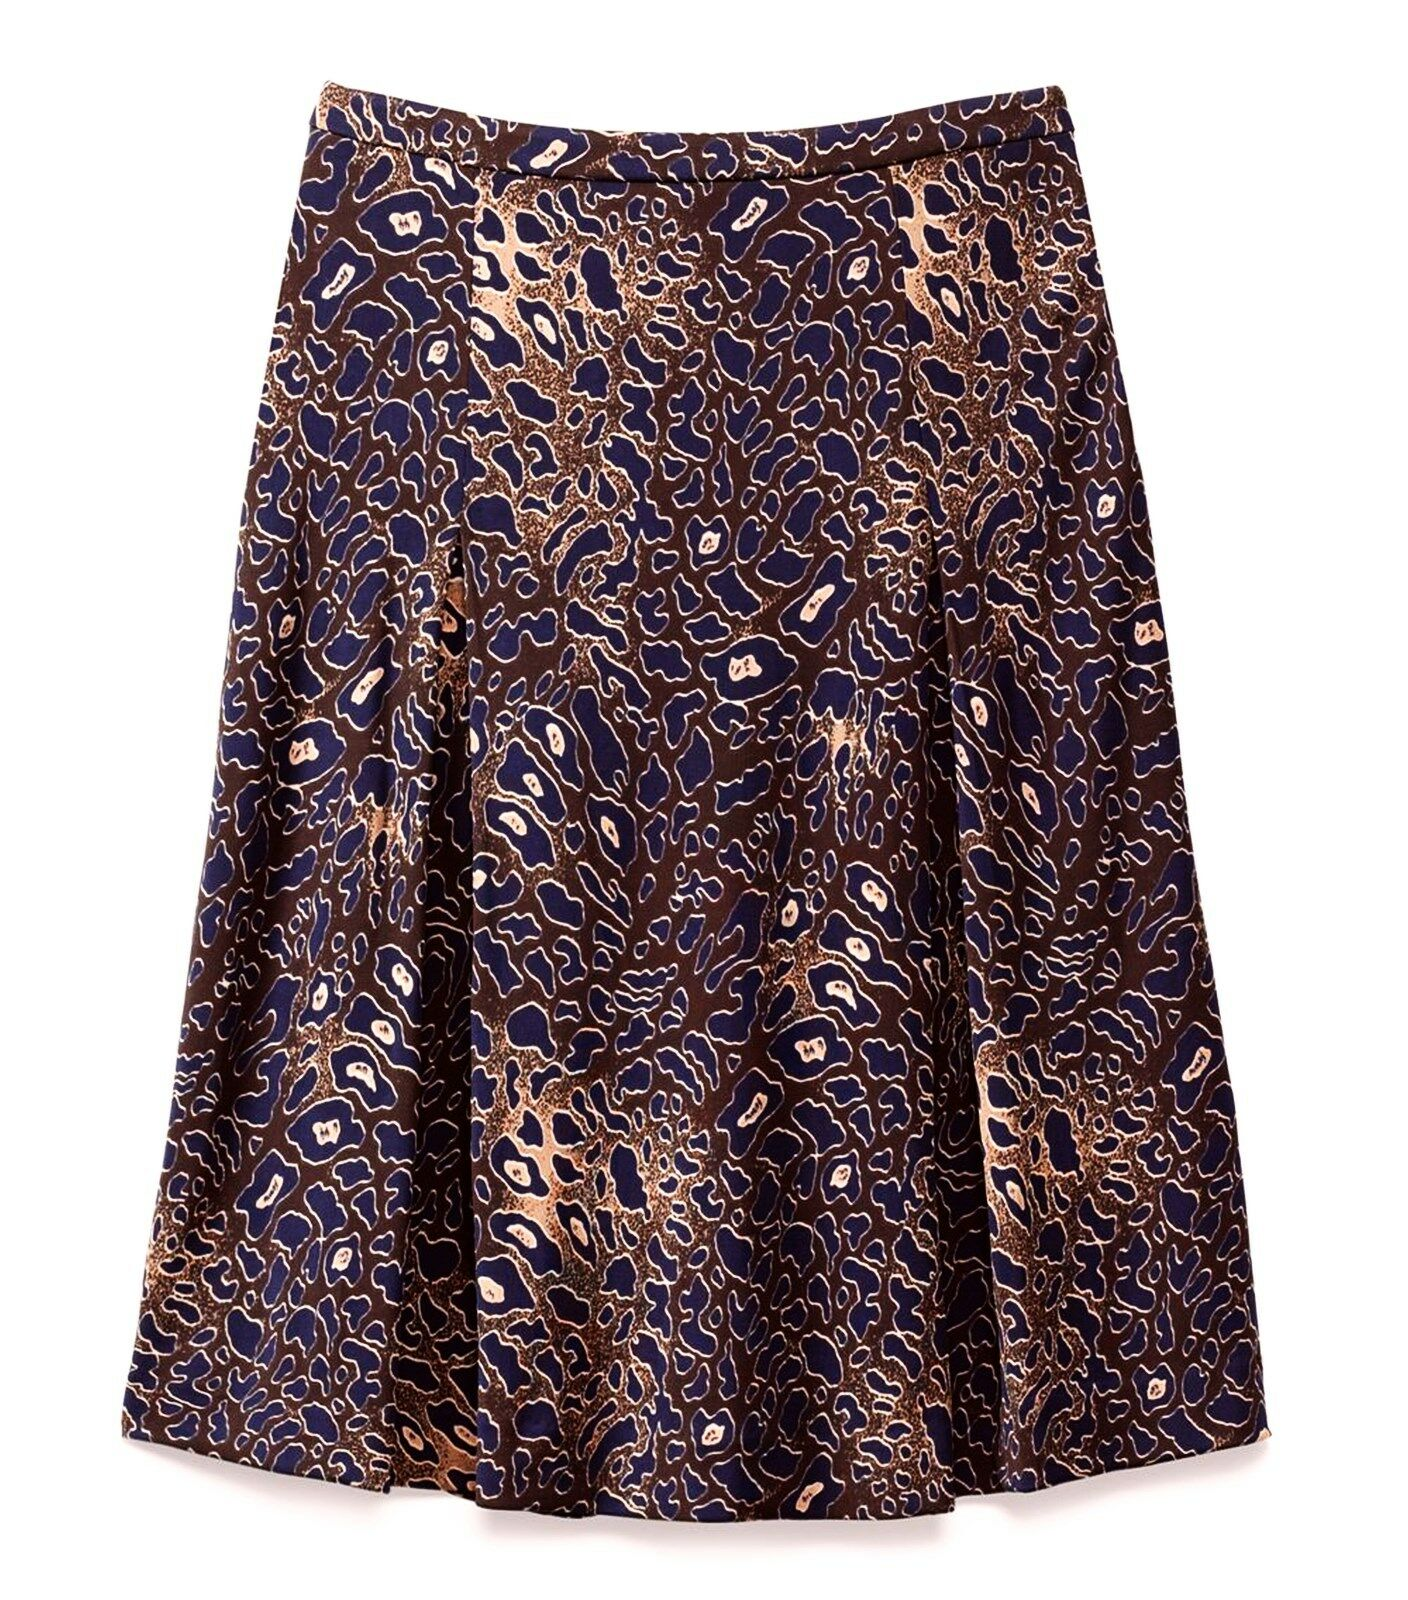 295 Tory Burch sz S (W  30.5 ) Coconut Abstract Leopard Farah Women Skirt NWT